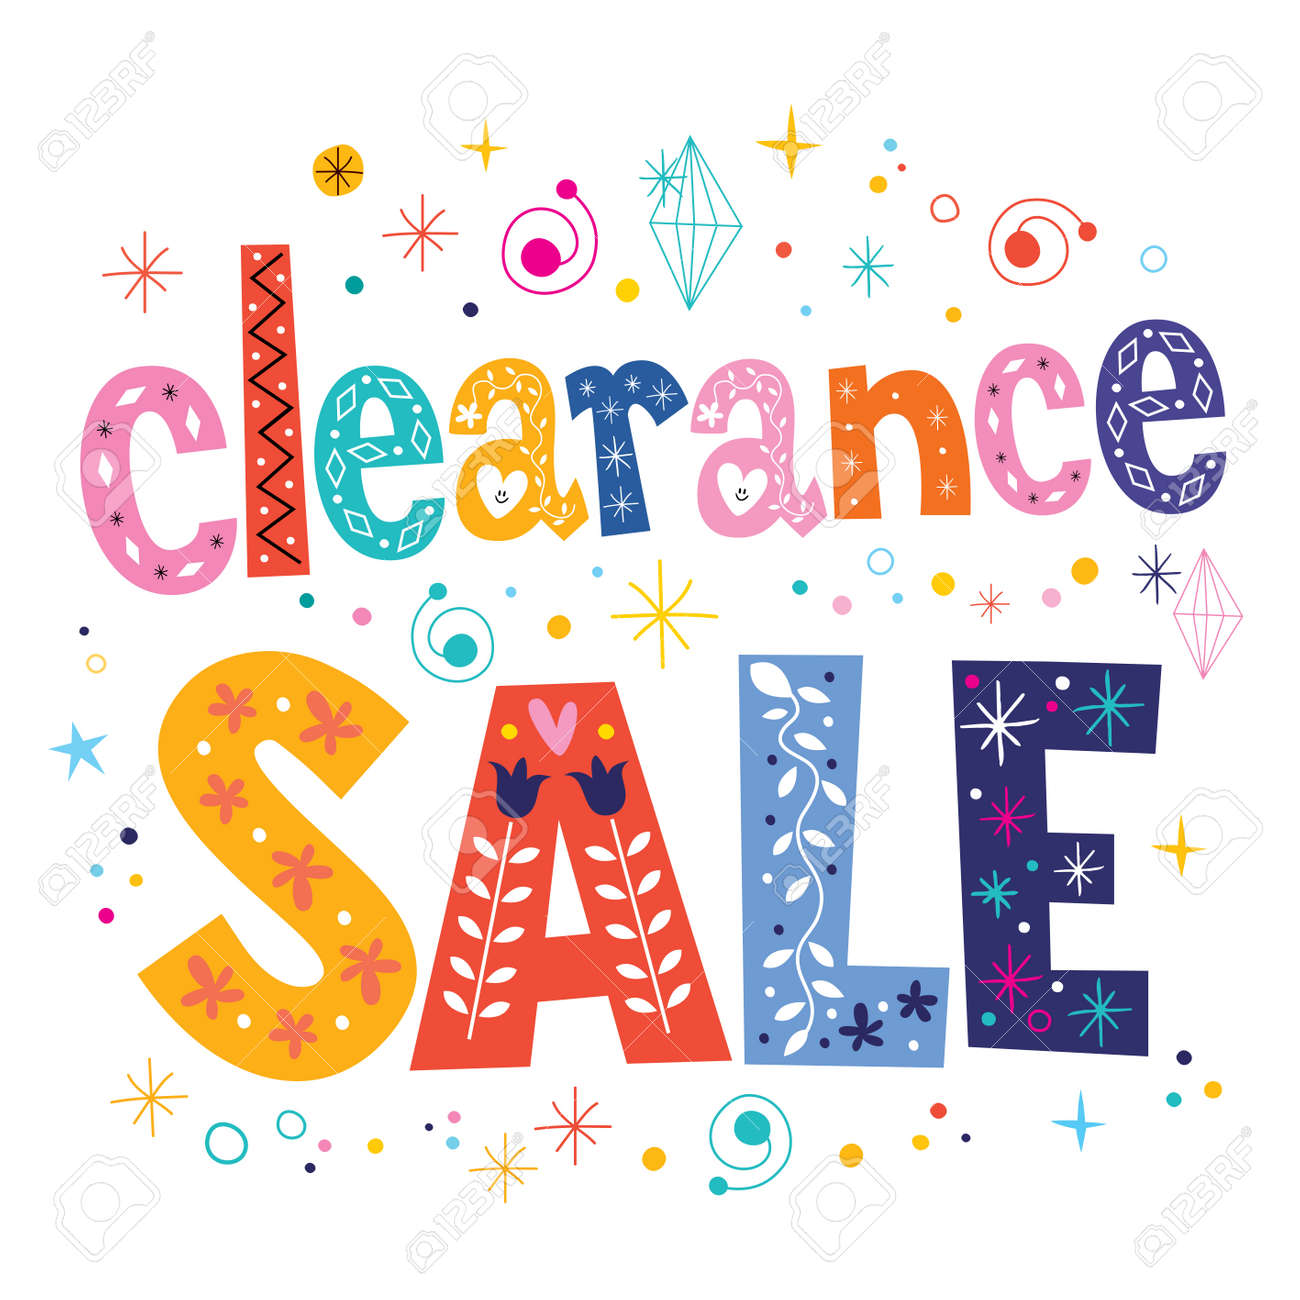 clearance sale decorative lettering type design Stock Photo - 54464576